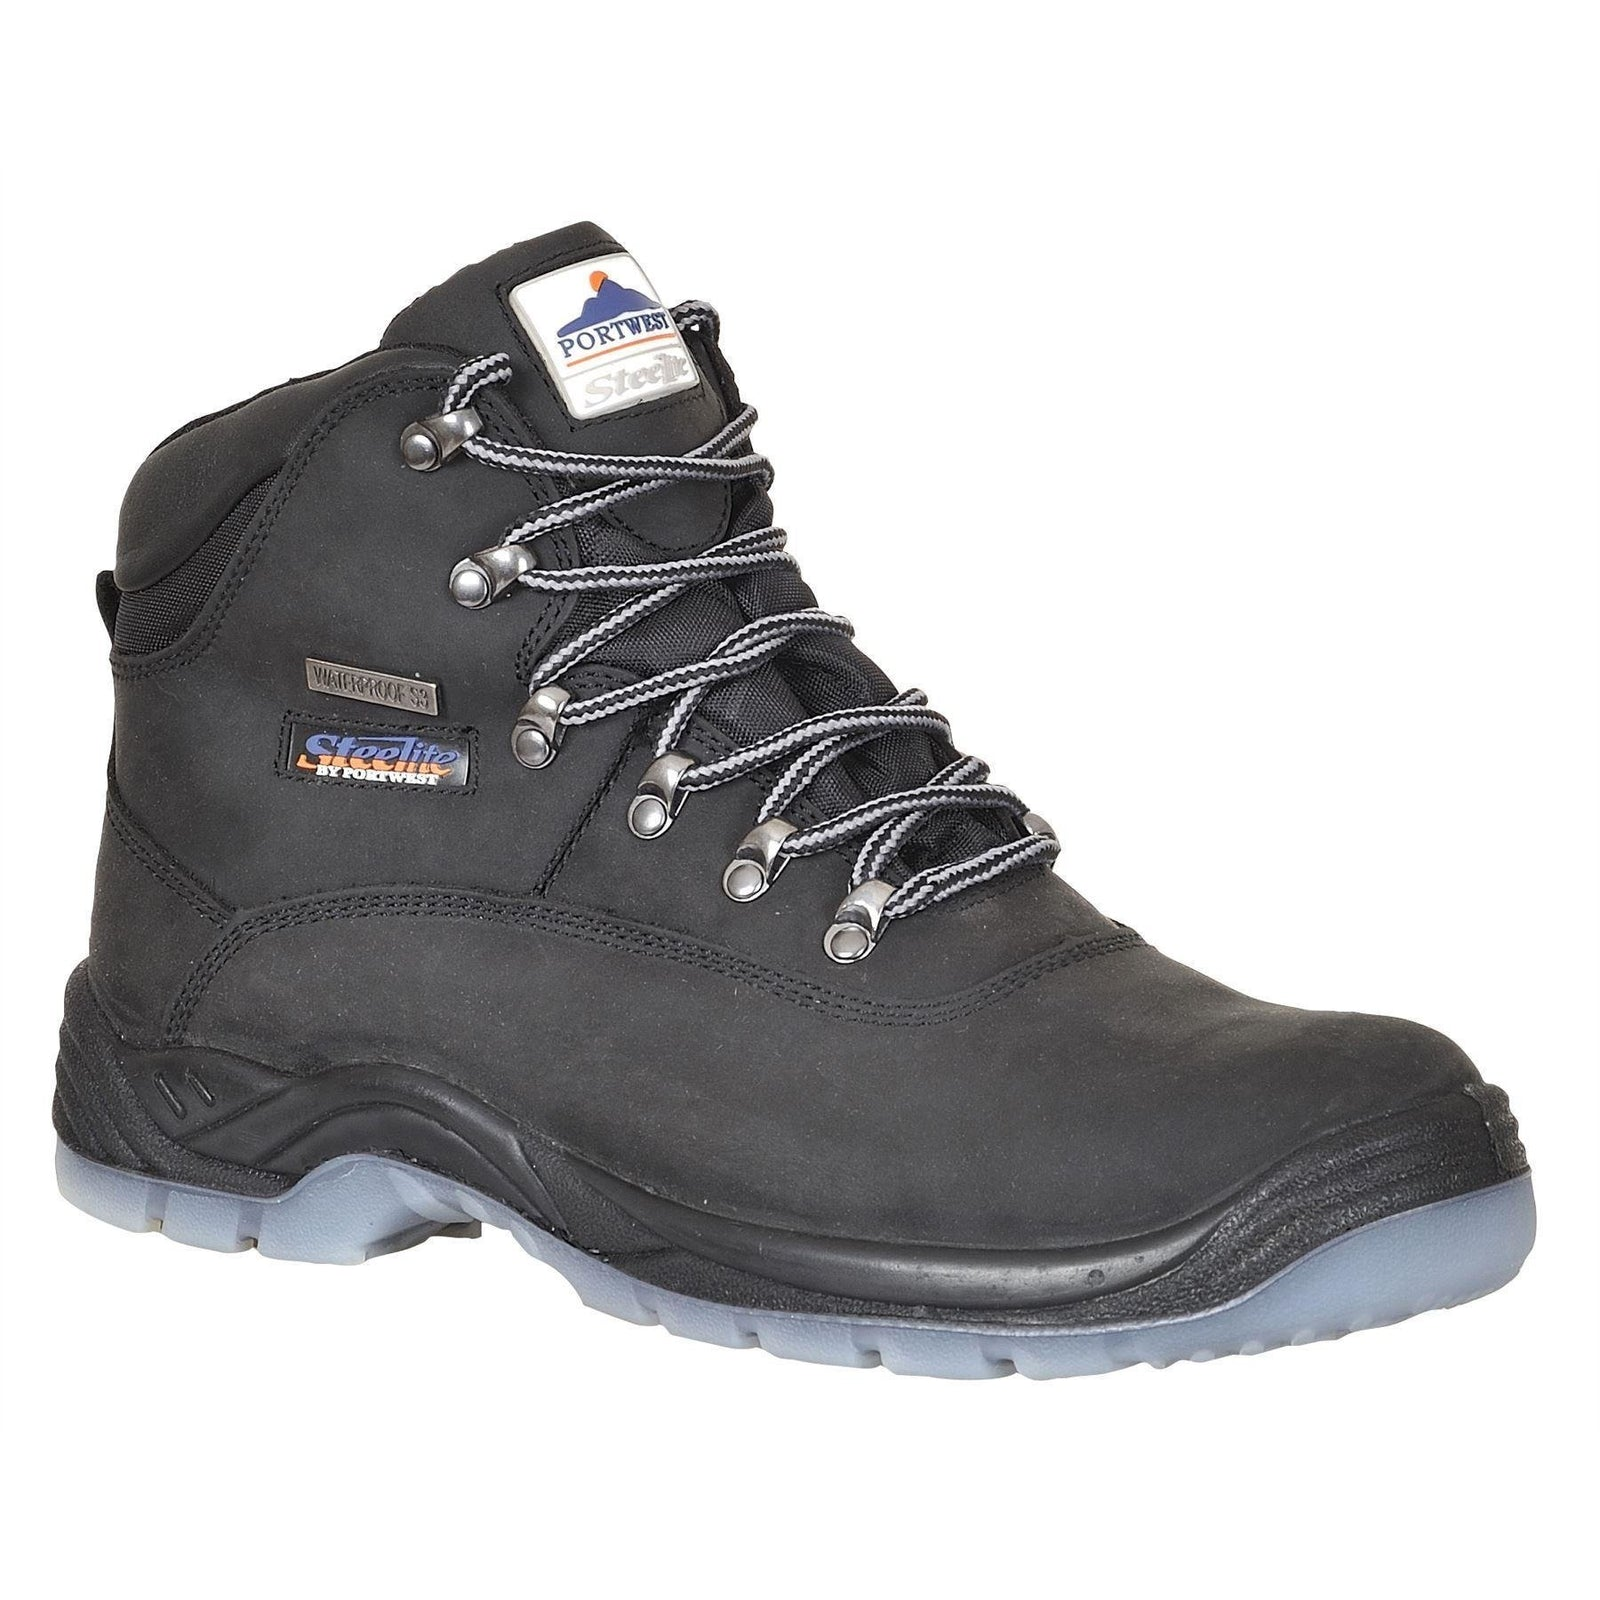 Portwest Steelite All Weather Boot S3 WR FW57 - reid outdoors